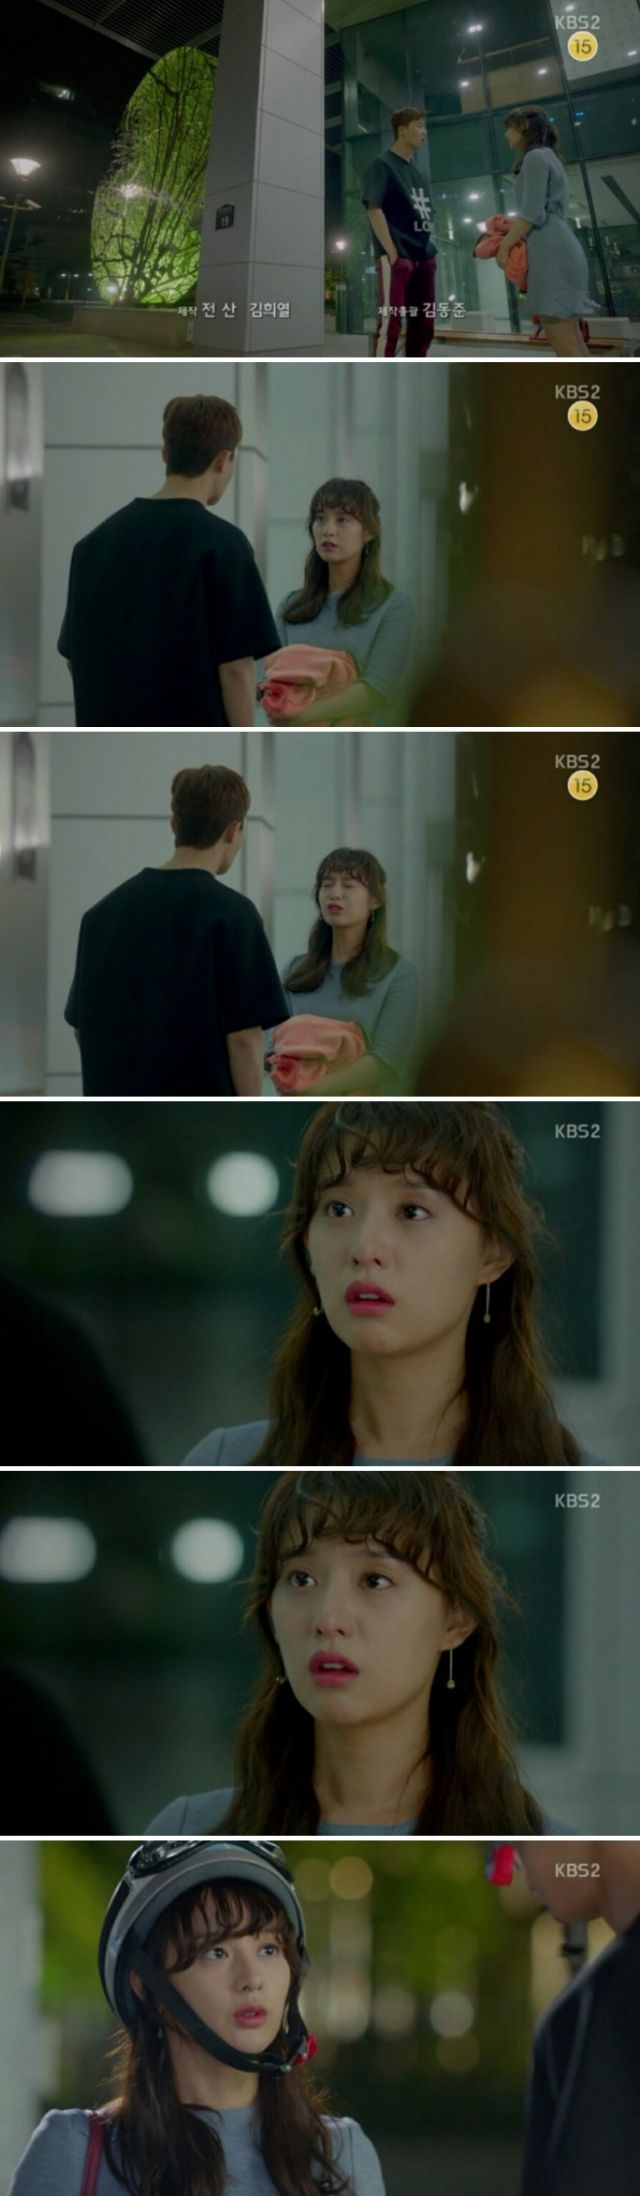 [Spoiler] Added episode 8 captures for the Korean drama 'Fight My Way'